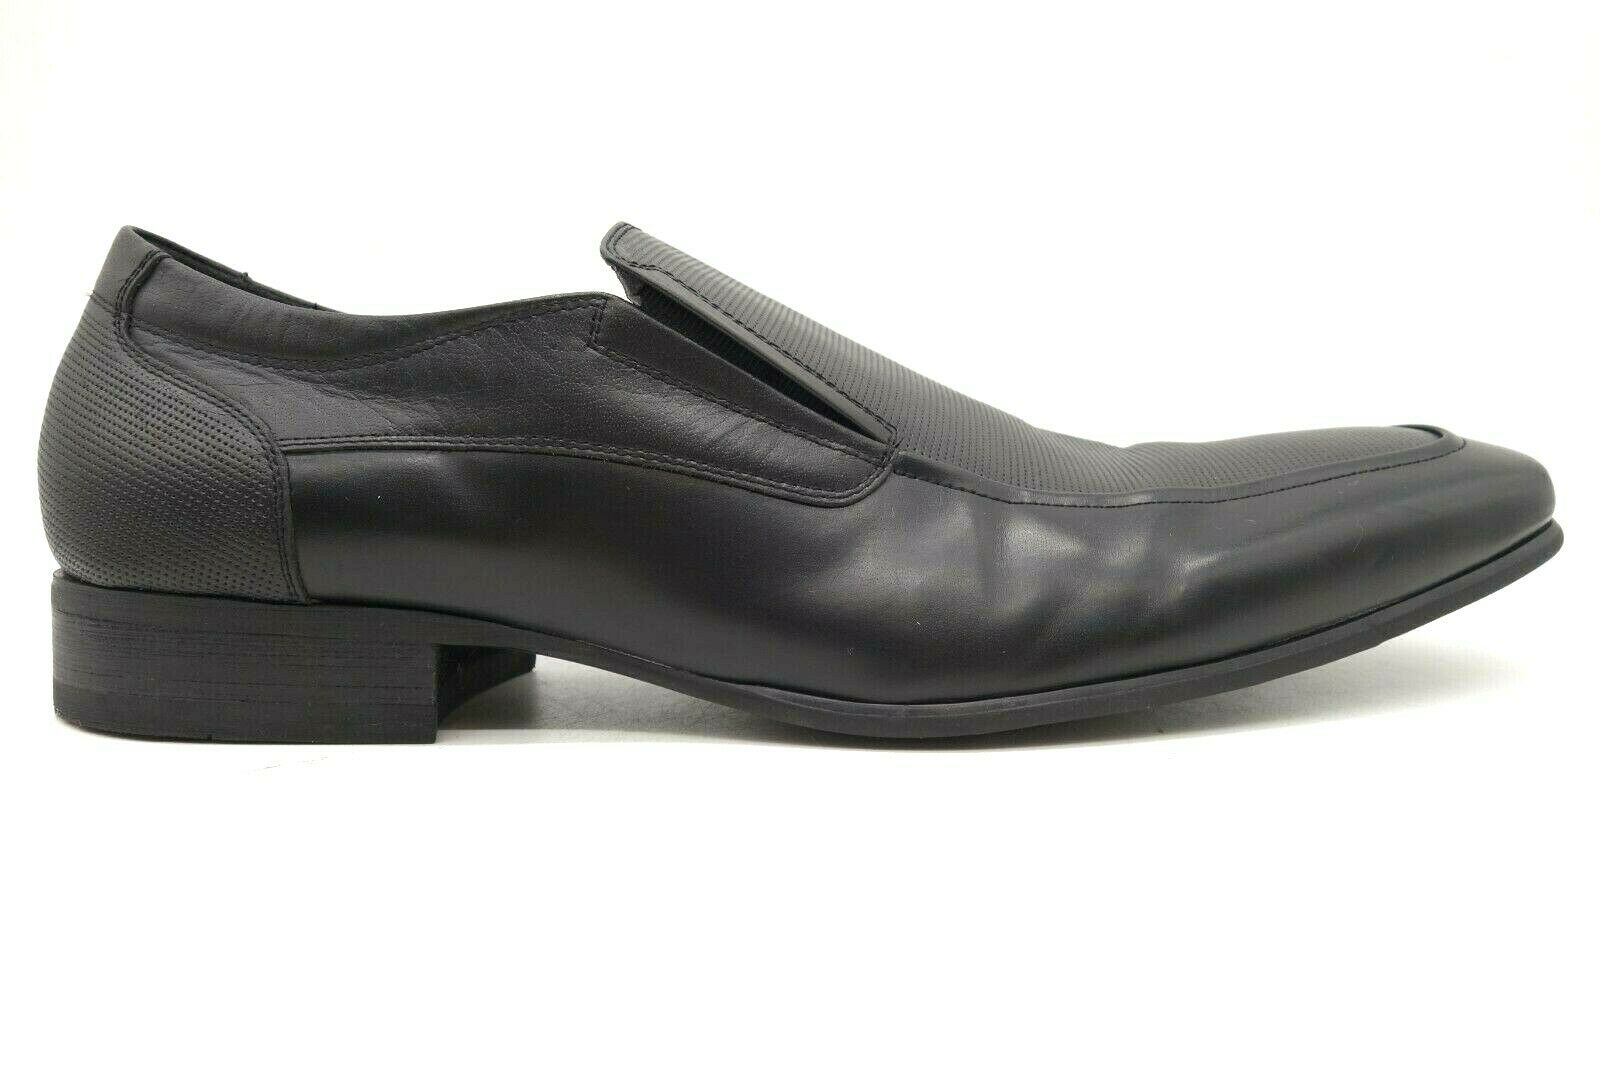 Kenneth Cole Reaction Car Polish Black Leather Slip On Loafers Shoes Men's 12 M